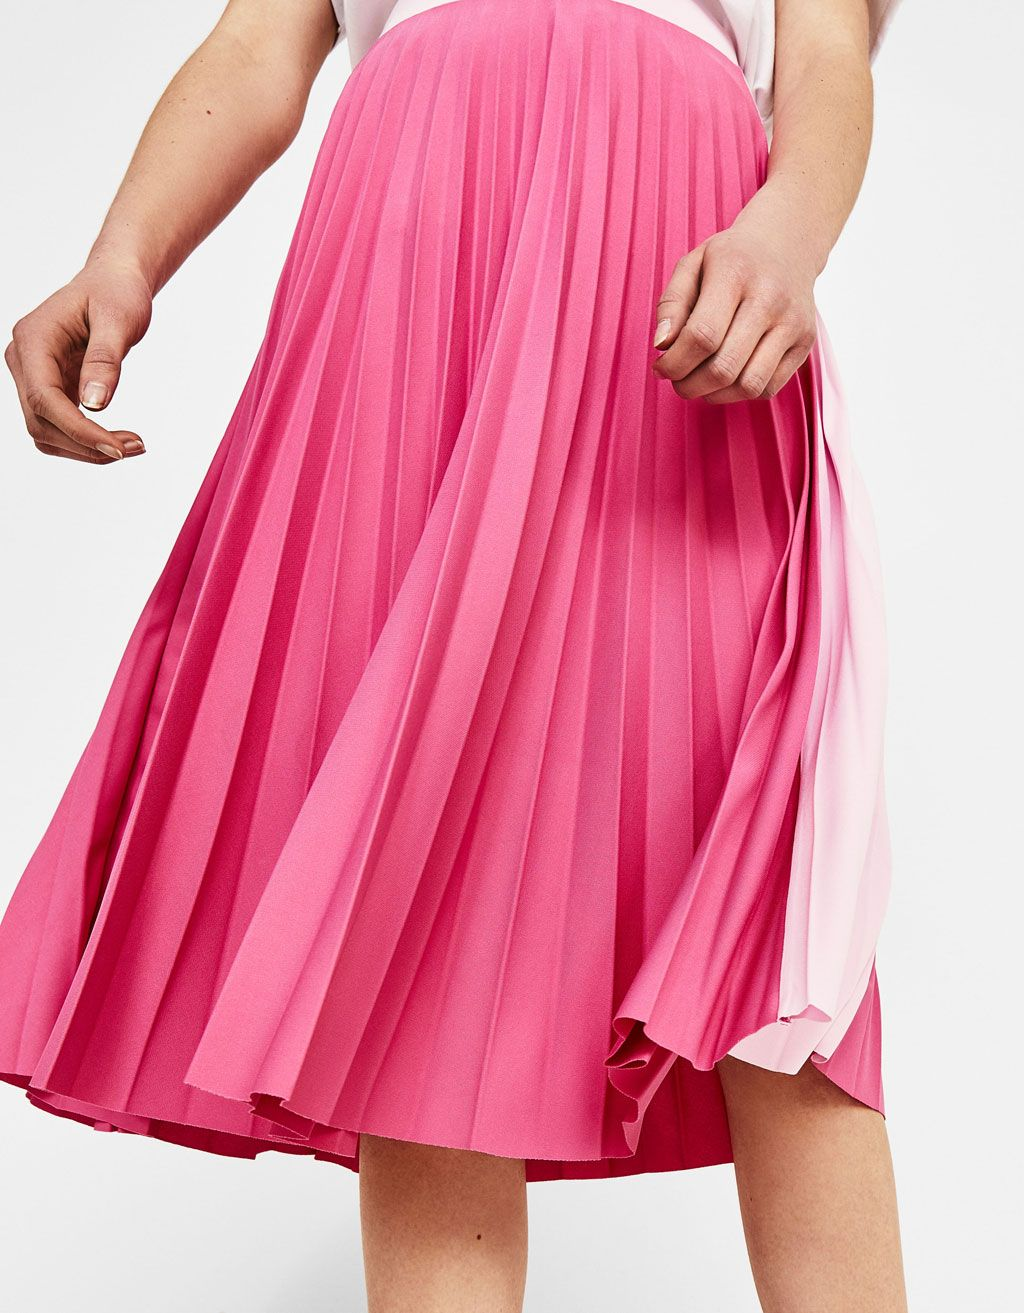 huge discount 6209f 13d15 Pleated midi skirt - Bershka fashion product cool trend trendy pink  outfit girl